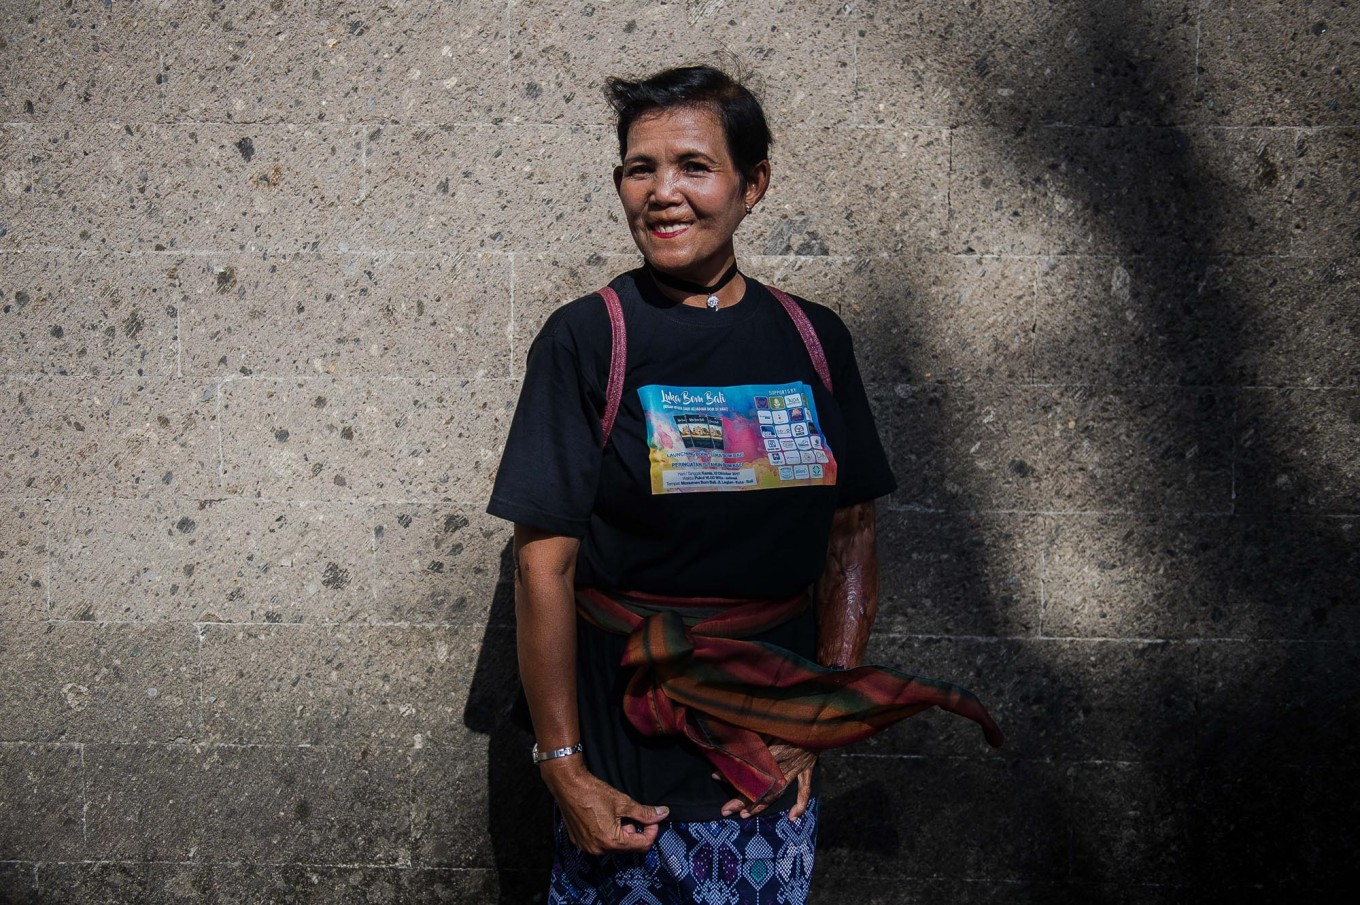 Ngesti Puji Rahayu, one of the 2002 bombing survivors, poses for a photo. She suffered burns on her left arm. JP/Anggara Mahendra